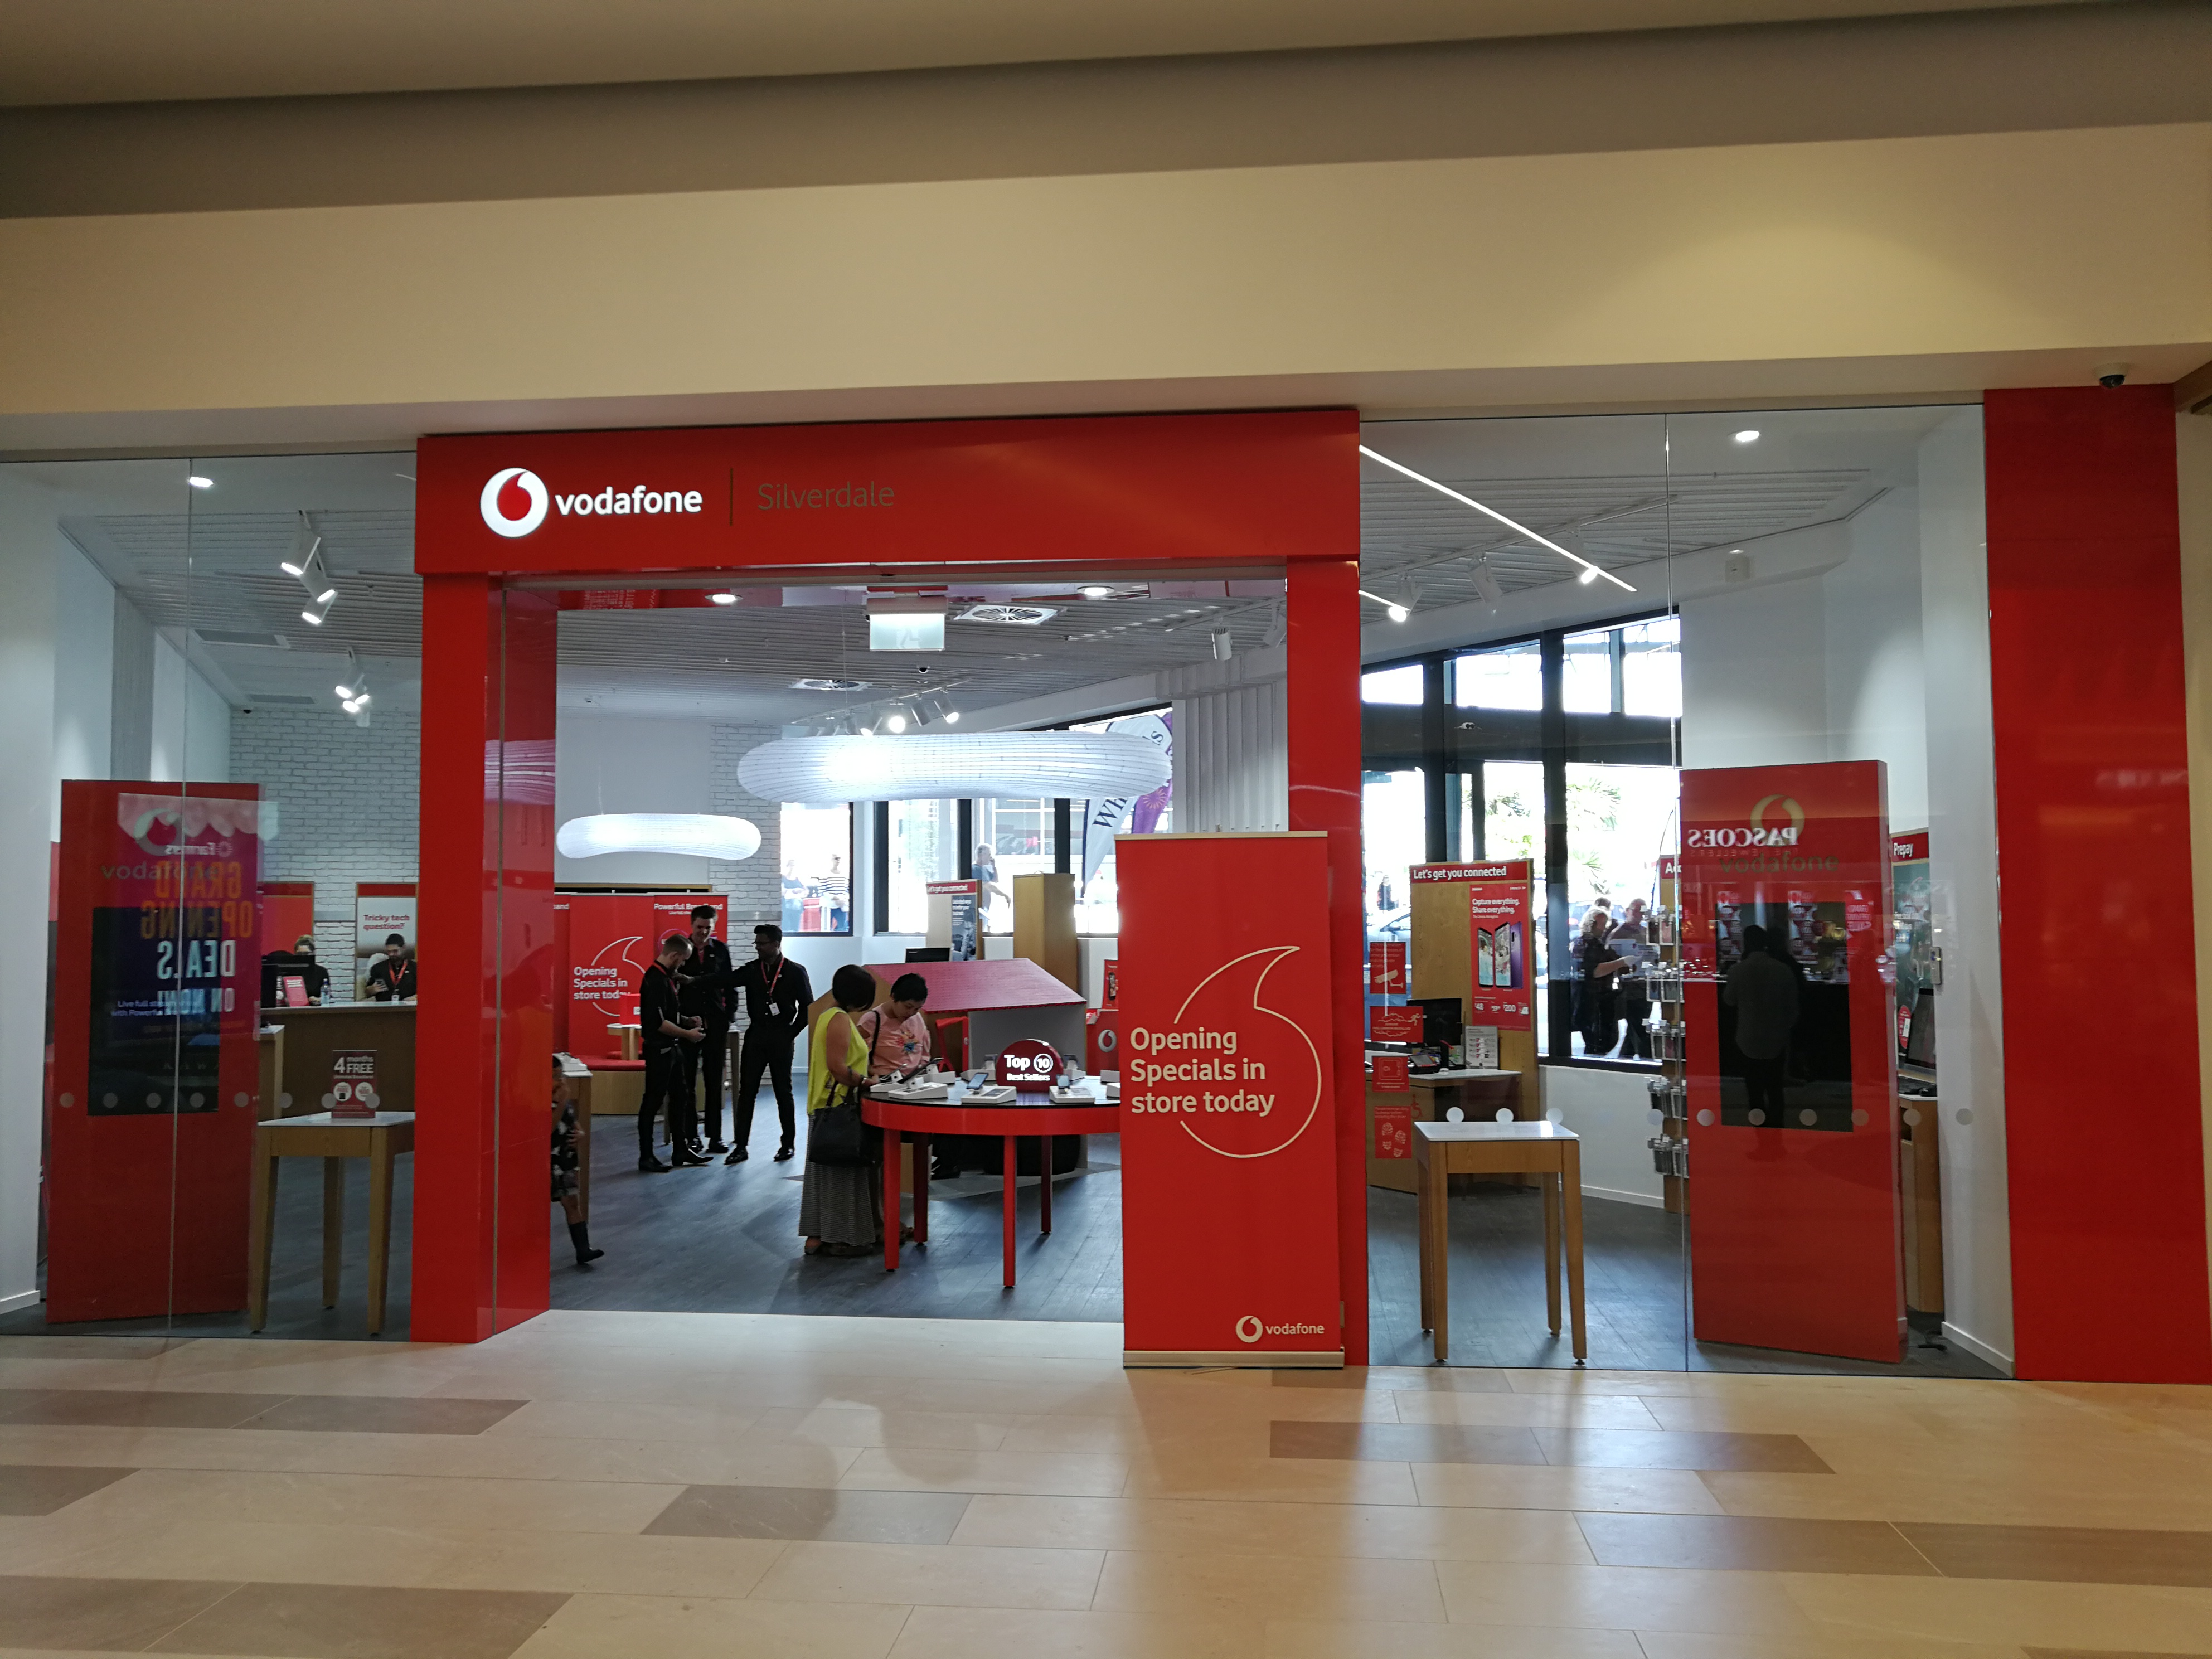 Onform Signs Vodafone Silverdale 1